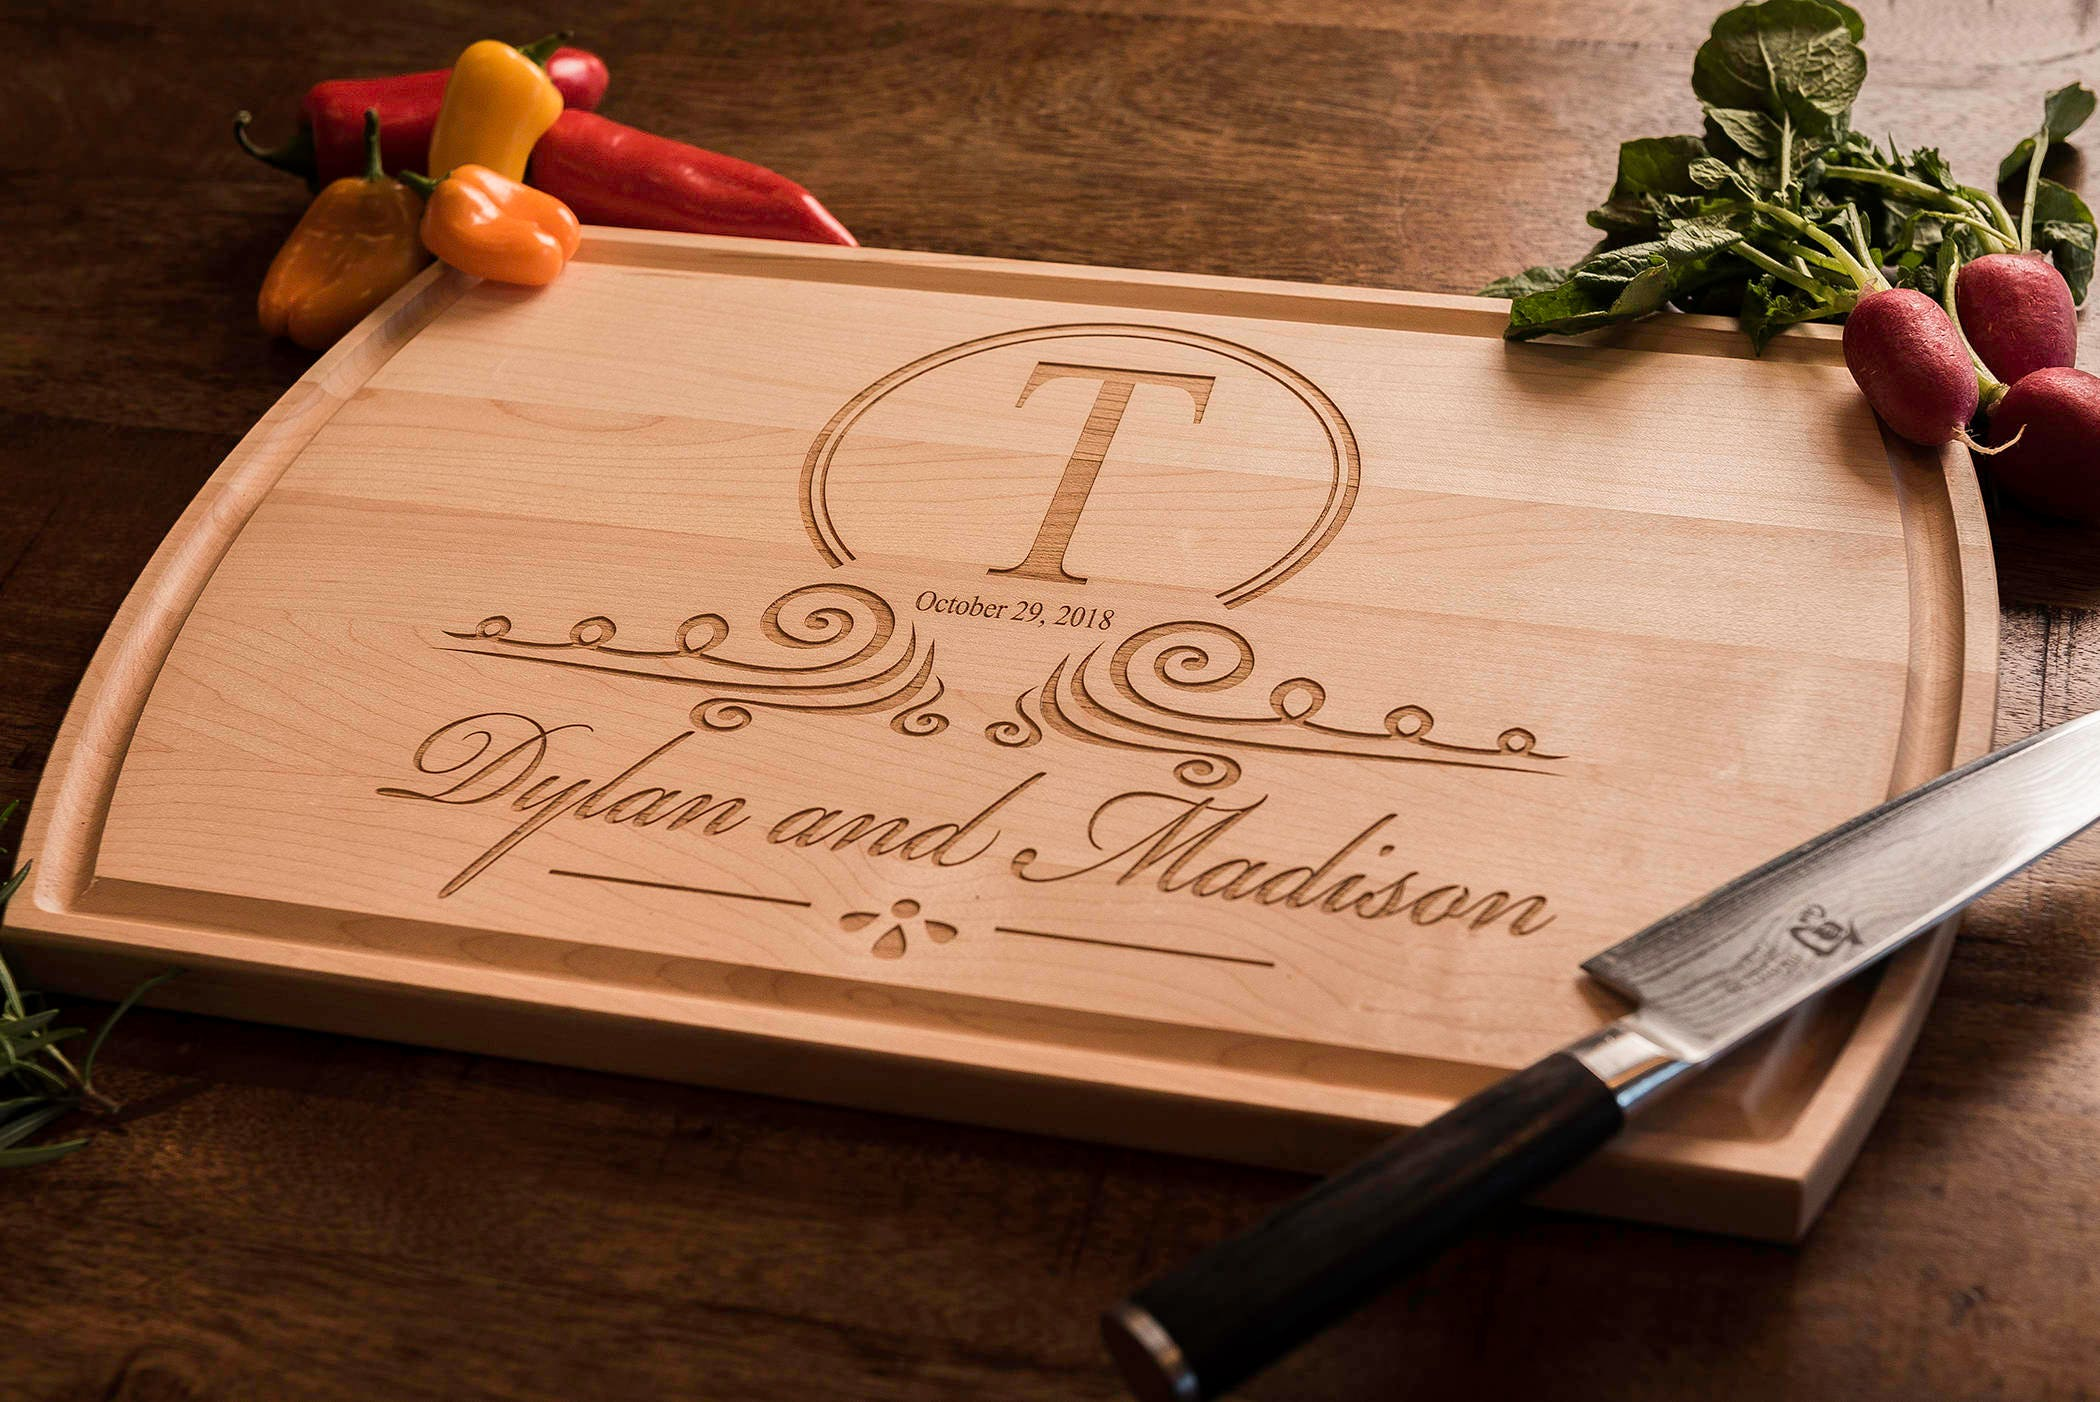 Personalized wedding gift monogrammed wood cutting board personalized wedding gift monogrammed wood cutting board engagement gift anniversary gift gift for parents gift for couple engraved negle Images